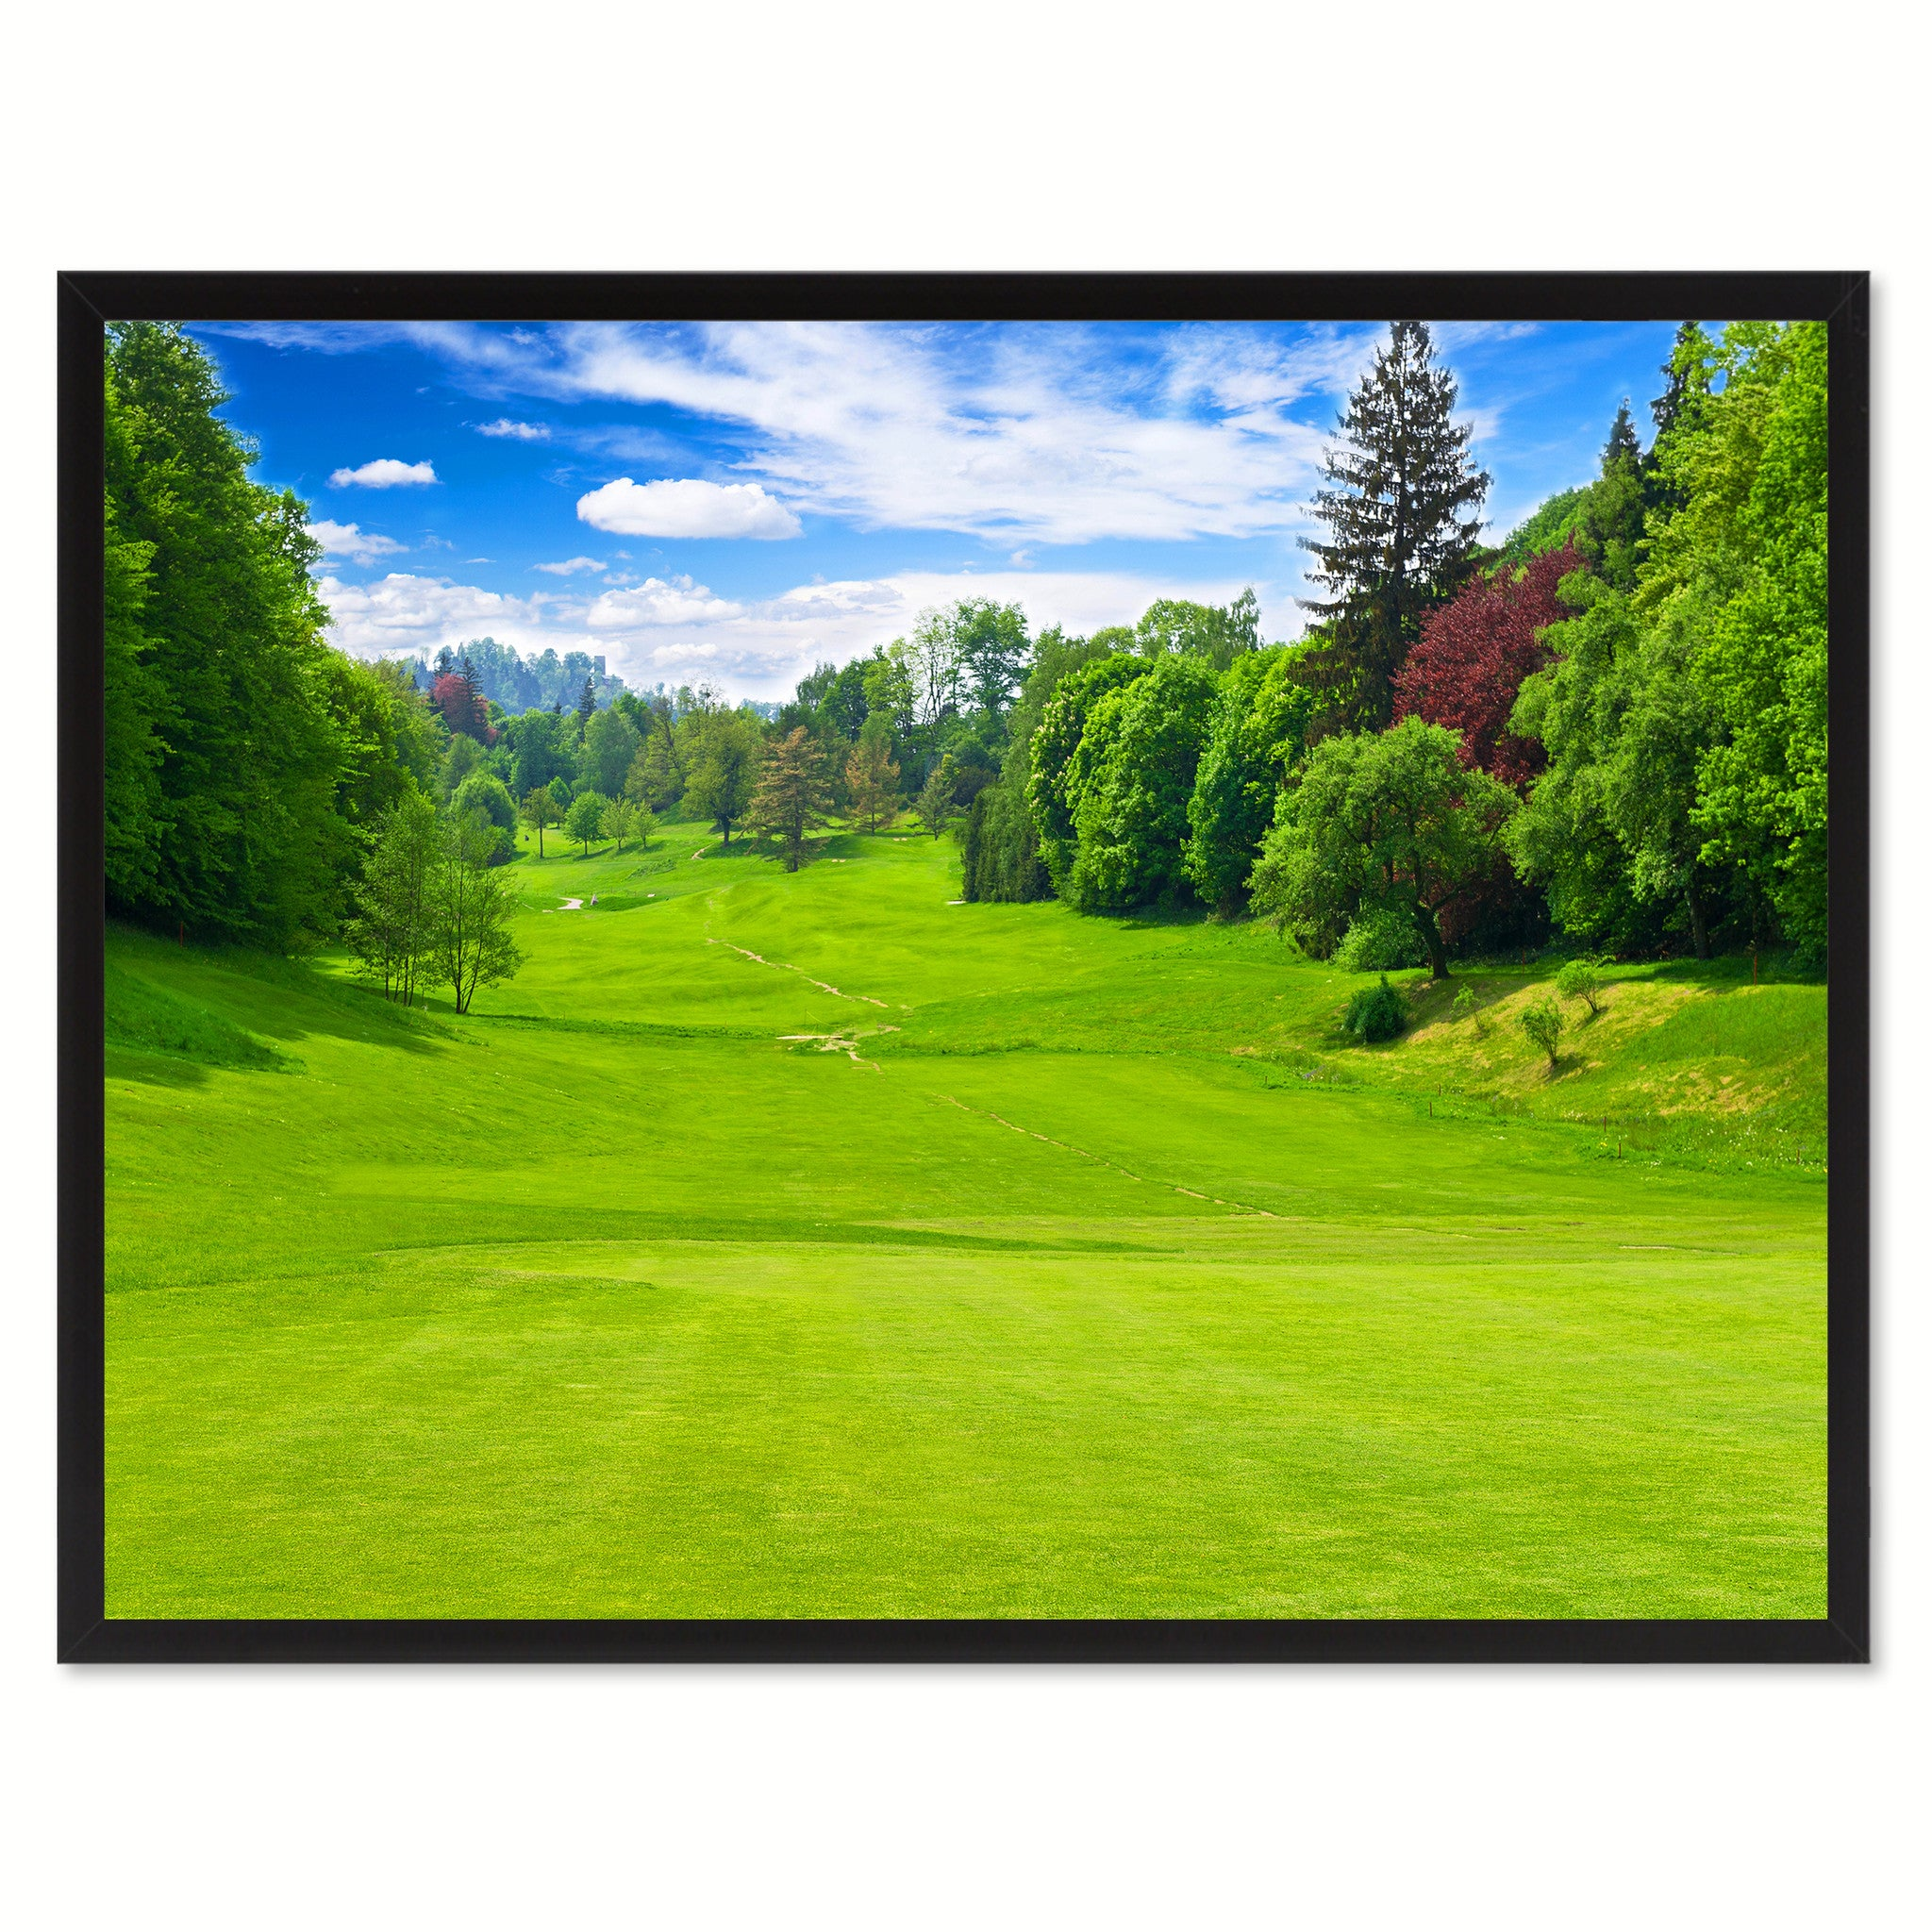 Vancouver Golf Course Photo Canvas Print Pictures Frames Home Décor Wall Art Gifts